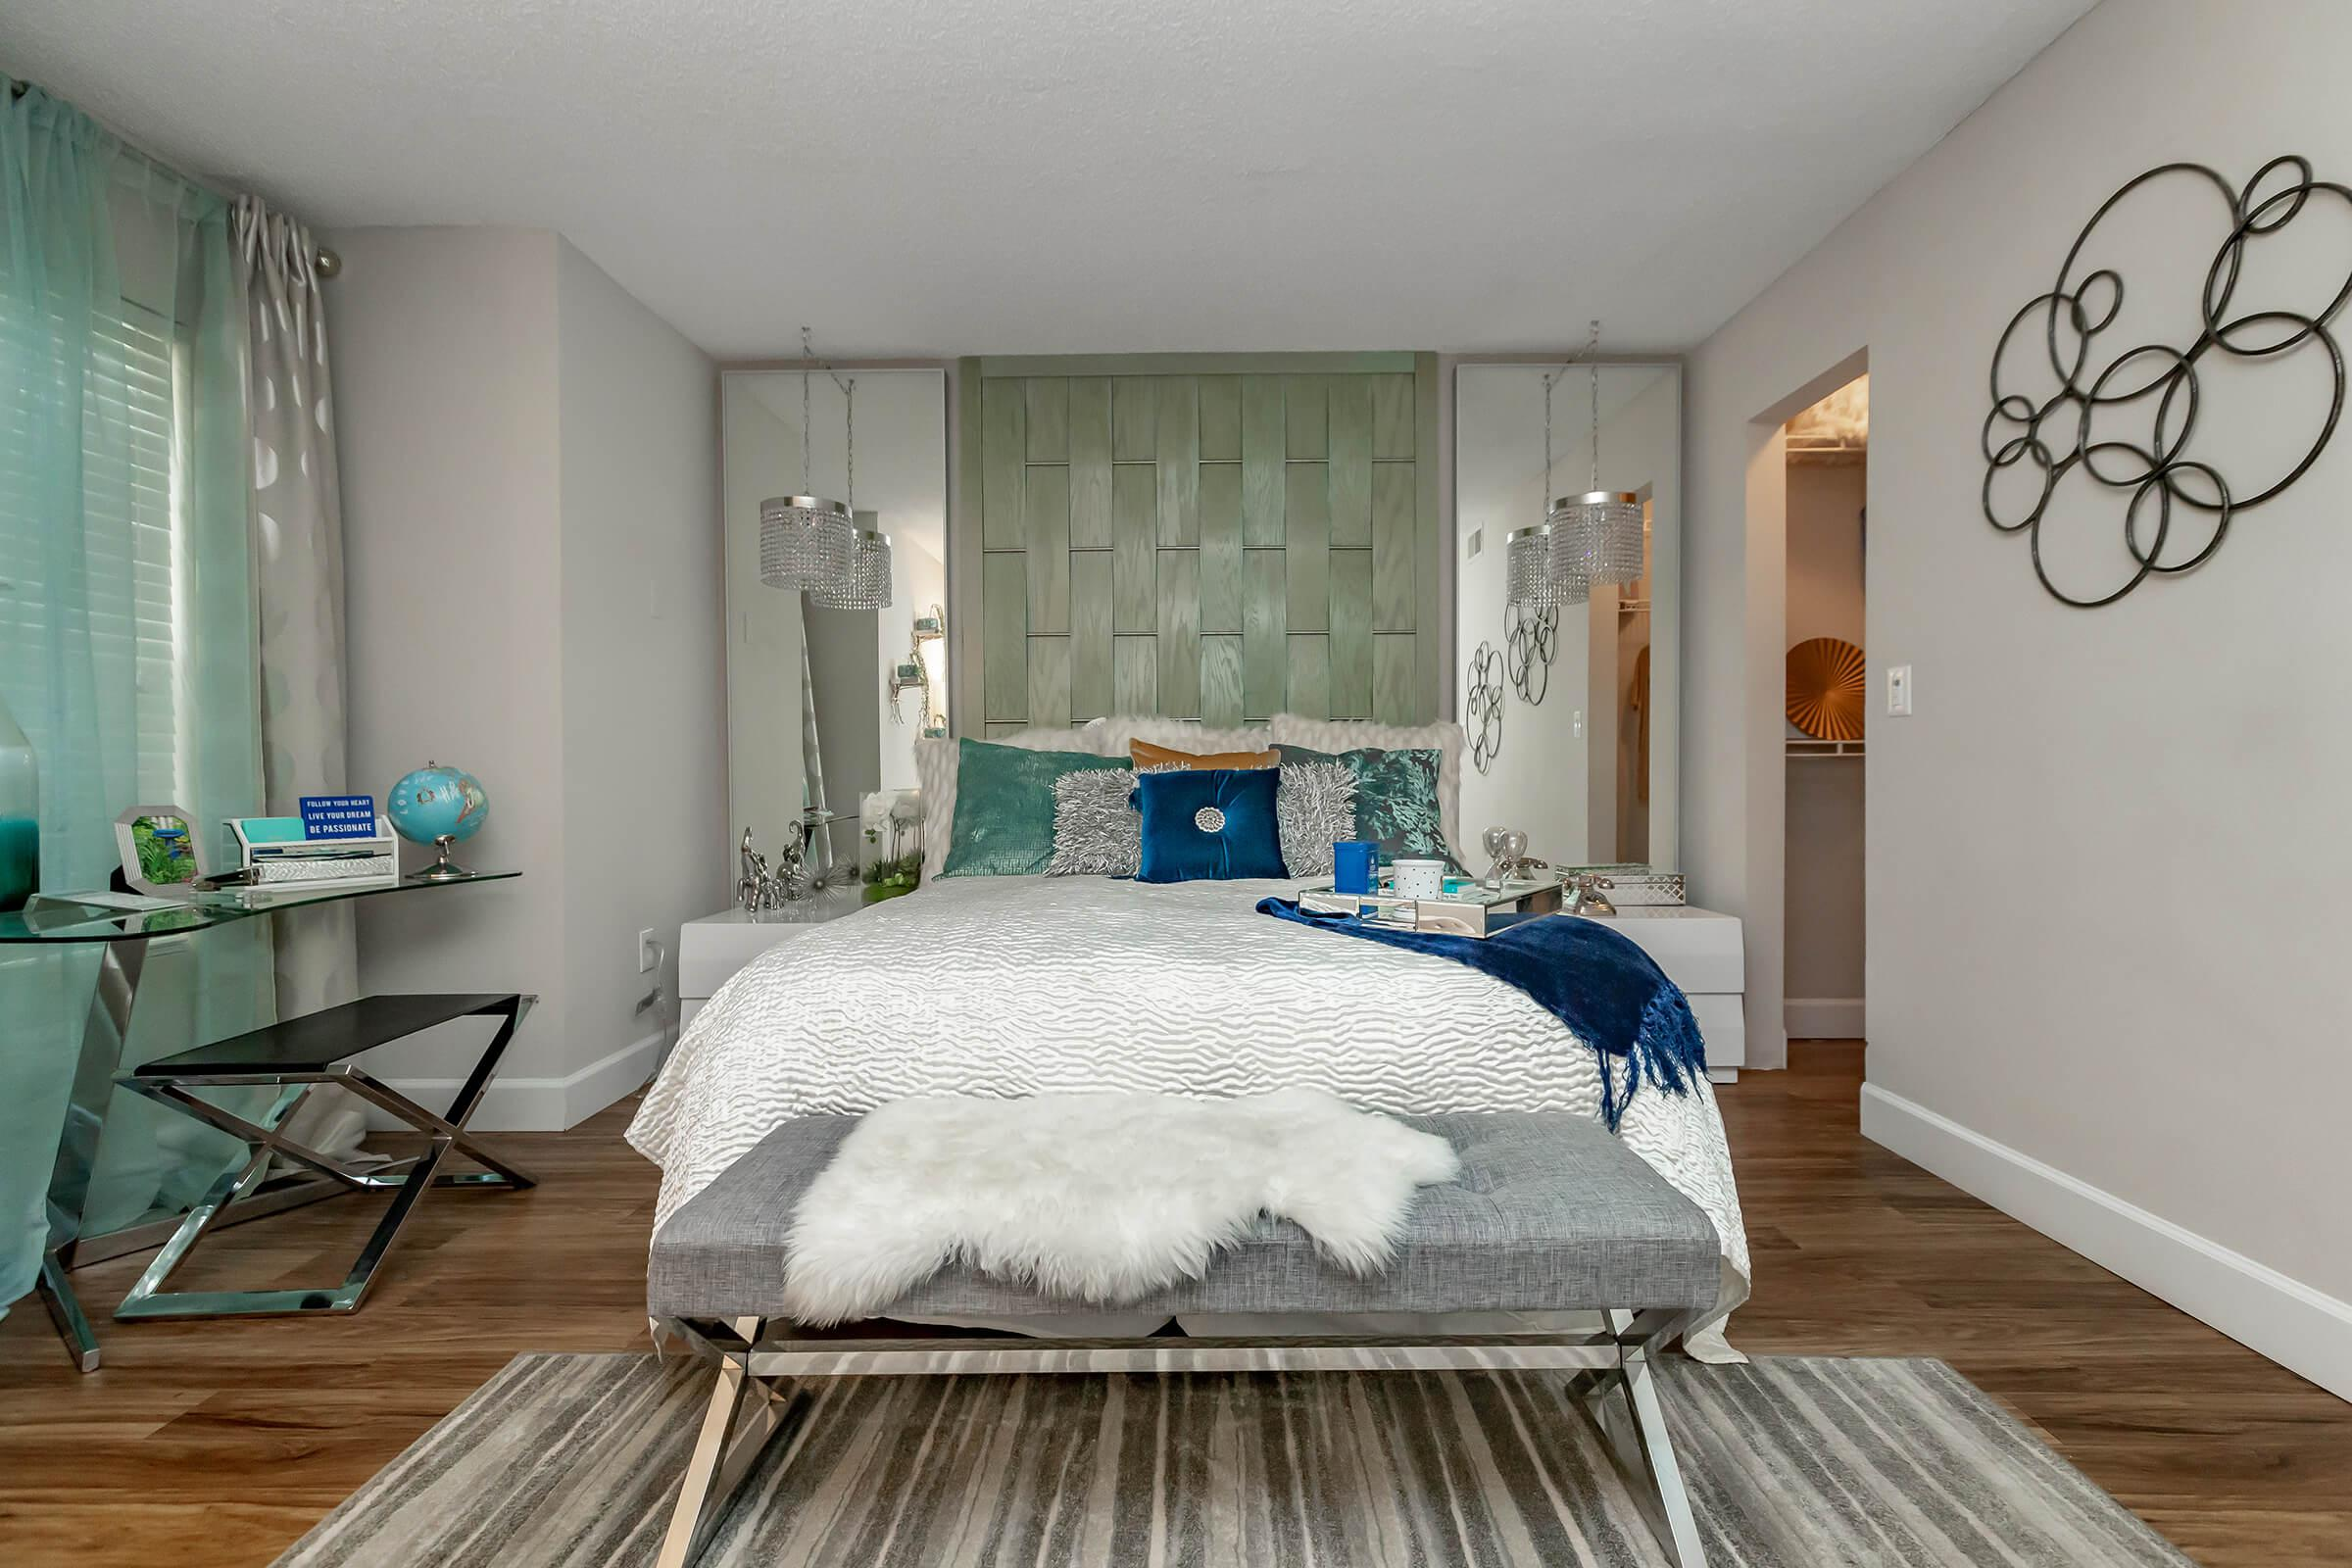 a bedroom with a wooden table